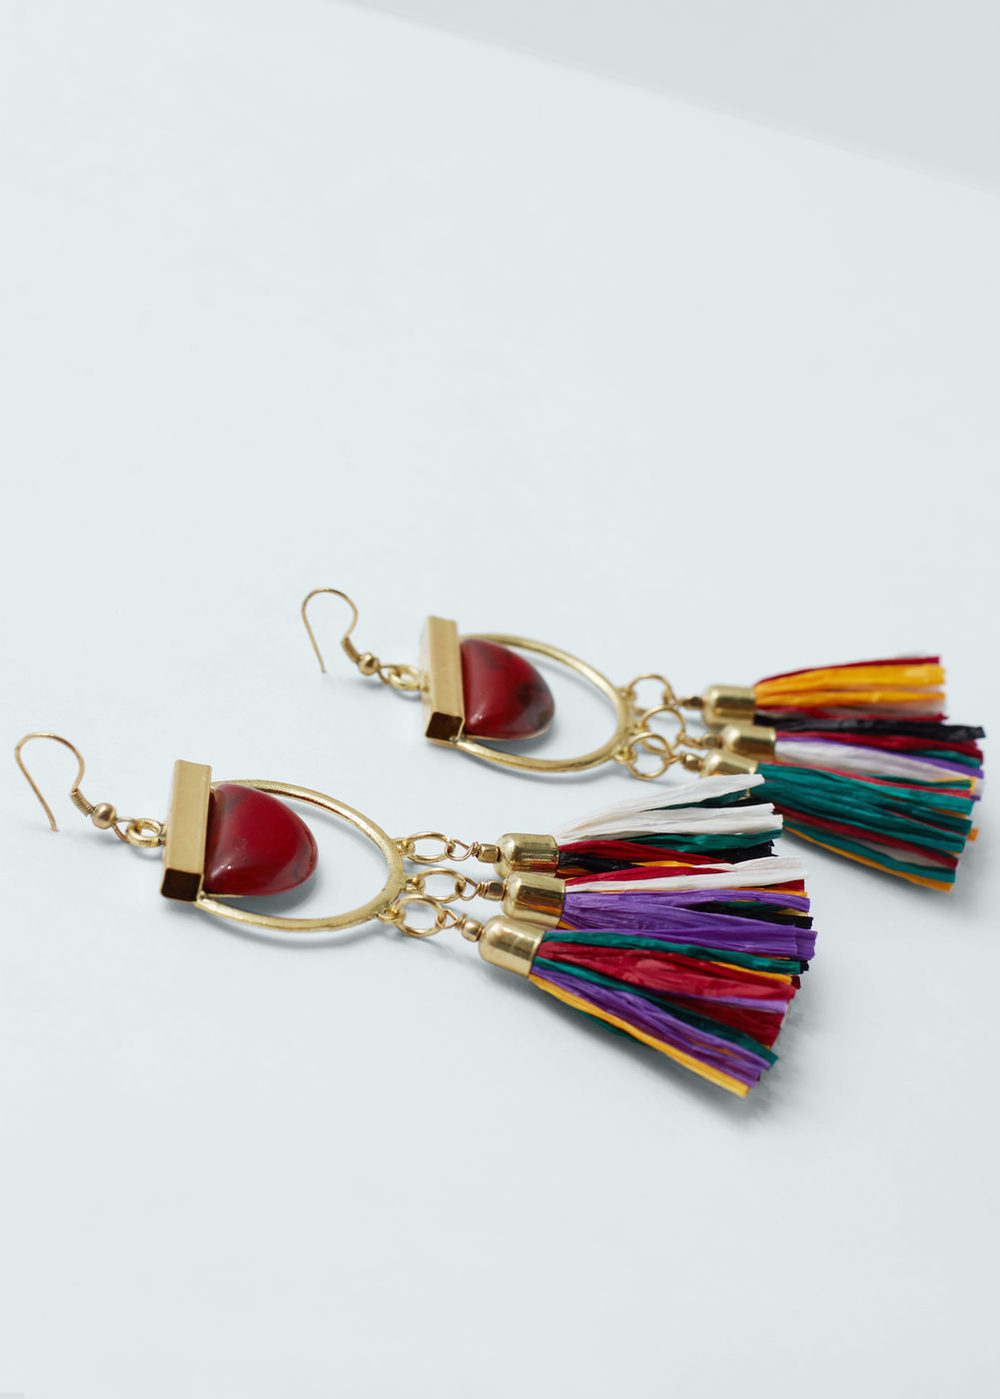 Mango Tassel Earrings, $19